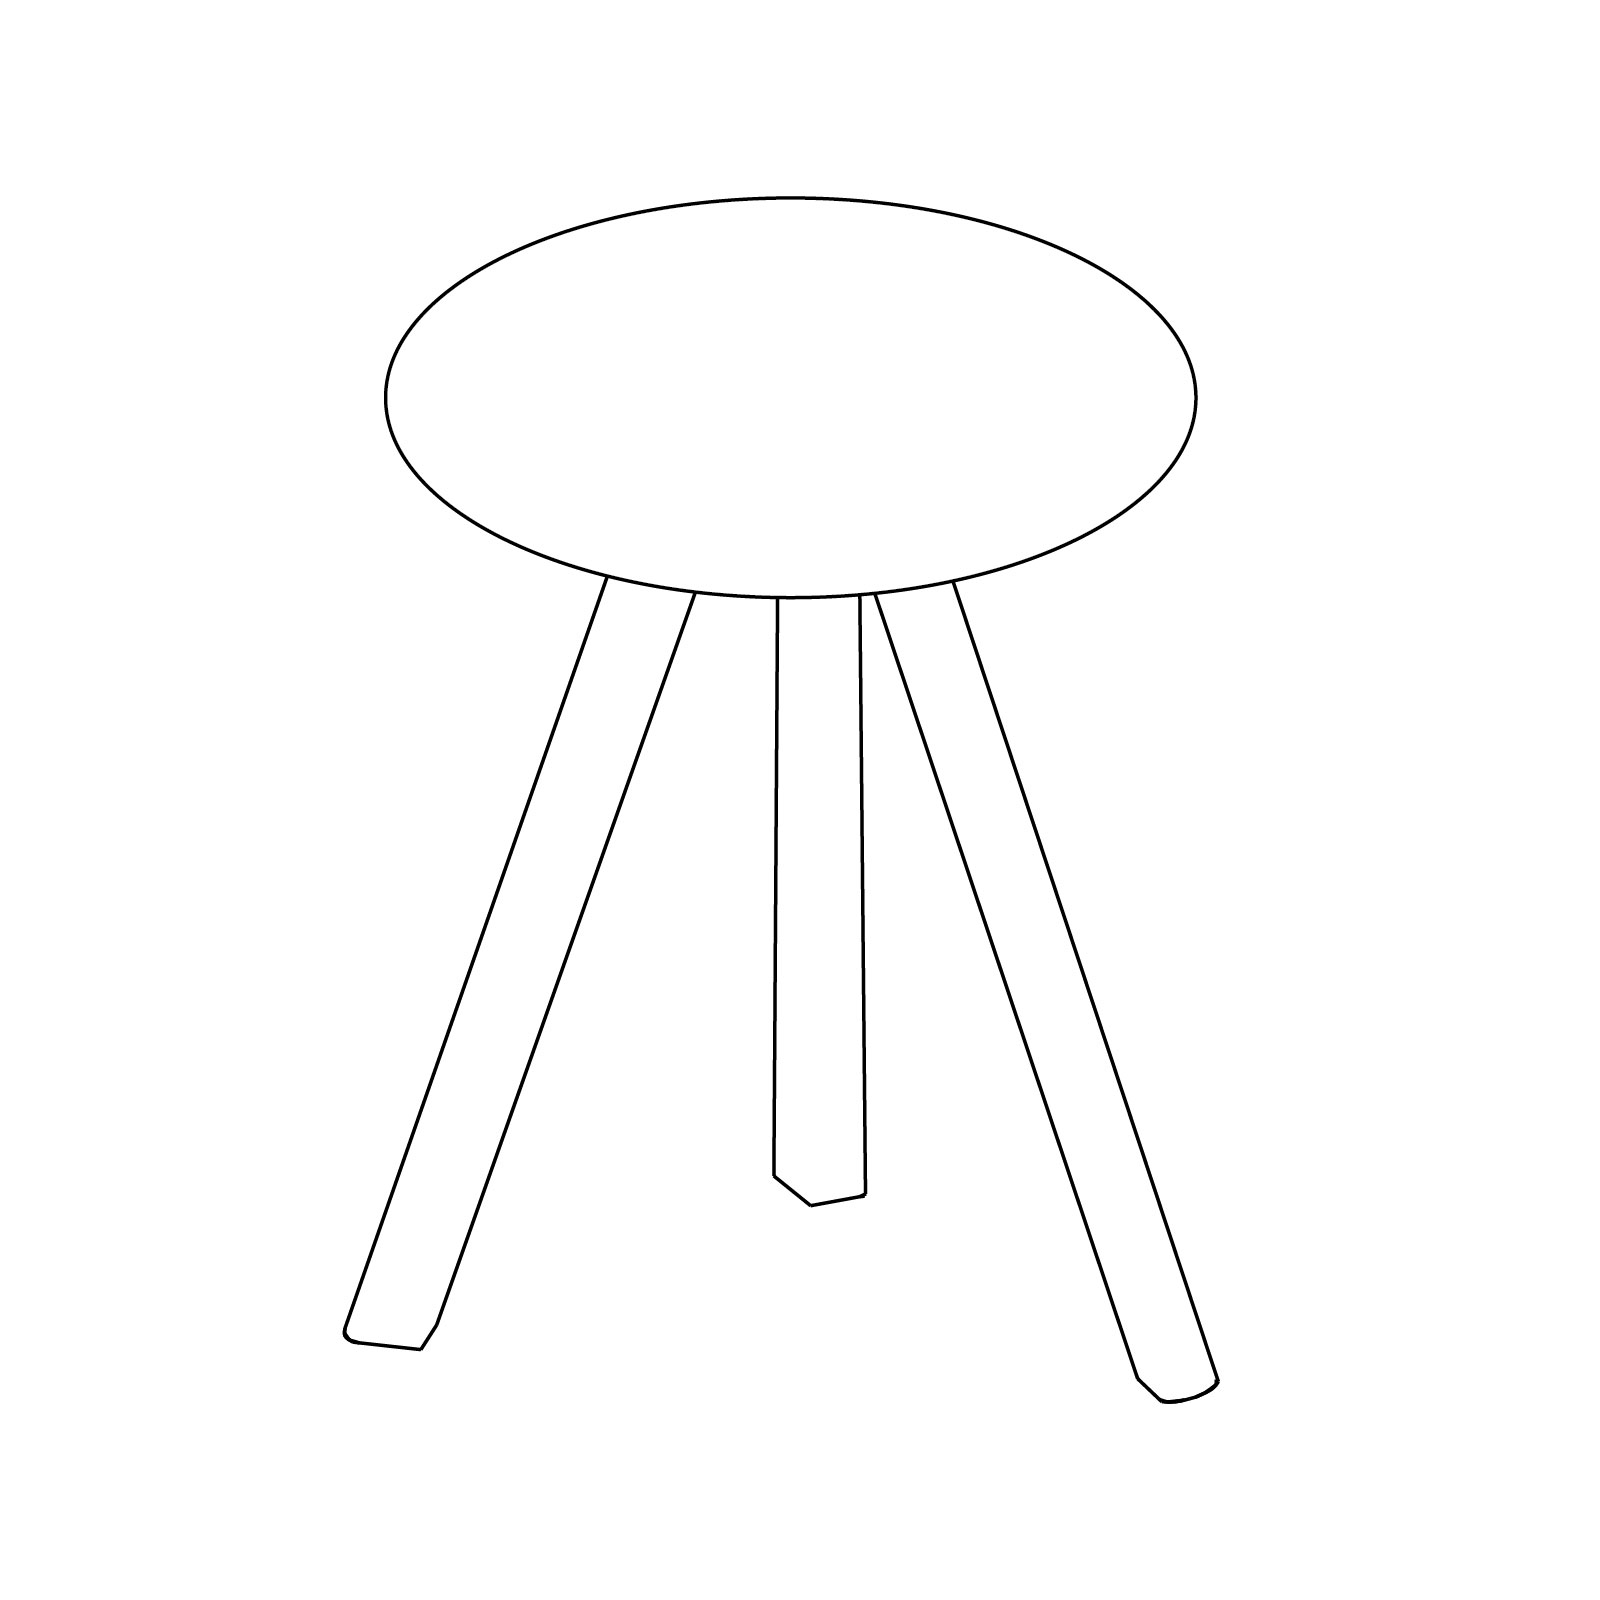 A line drawing of Copenhague Bistro Table–Round.